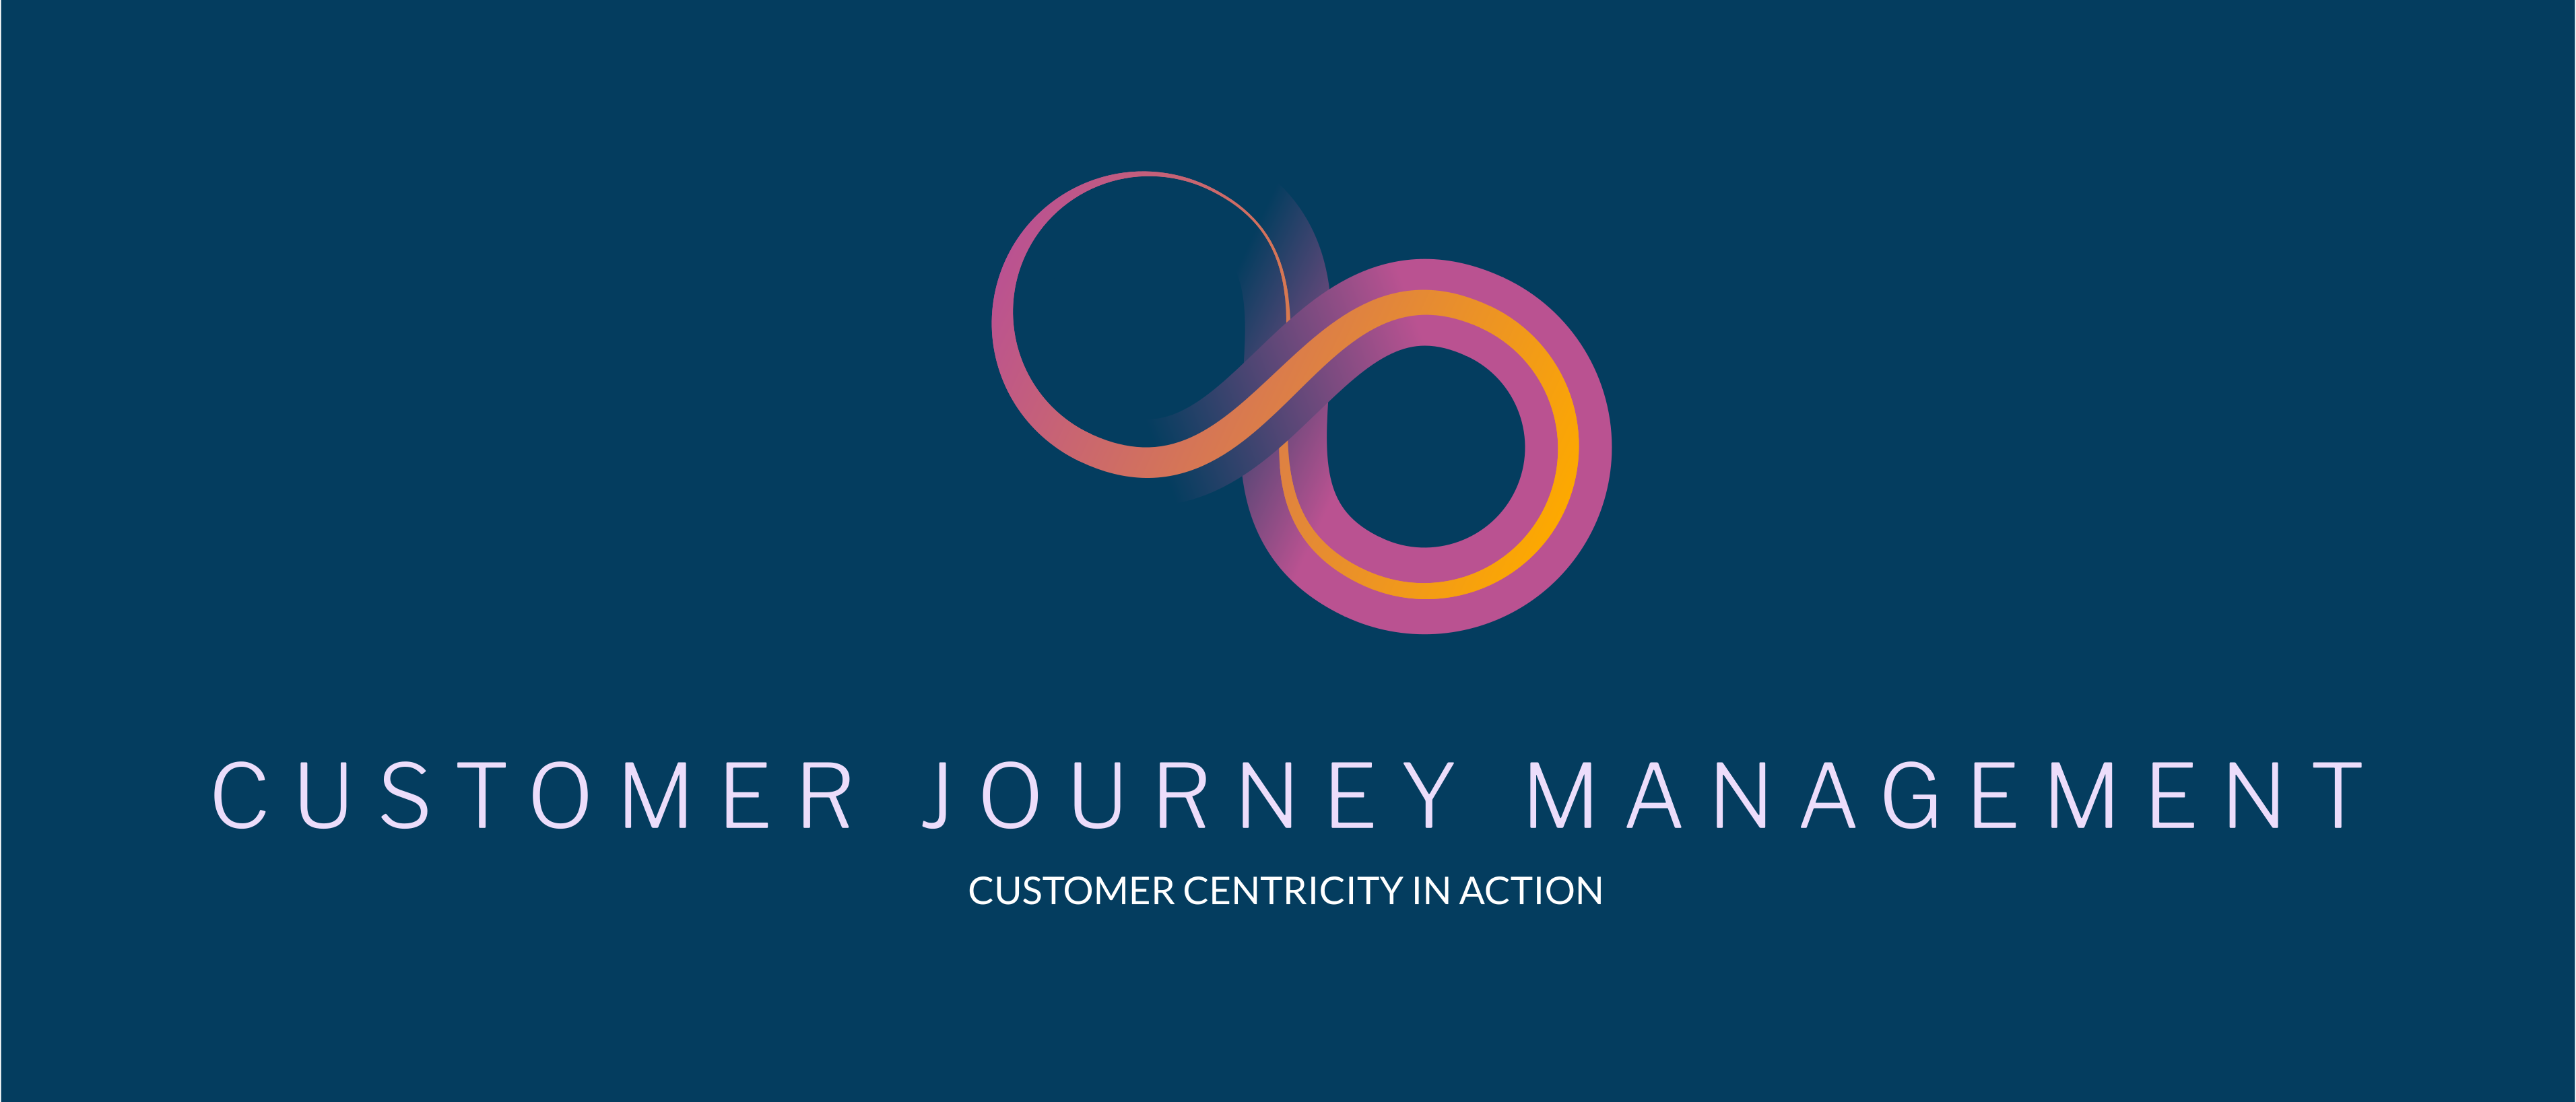 CUSTOMER JOURNEY MANAGMENT